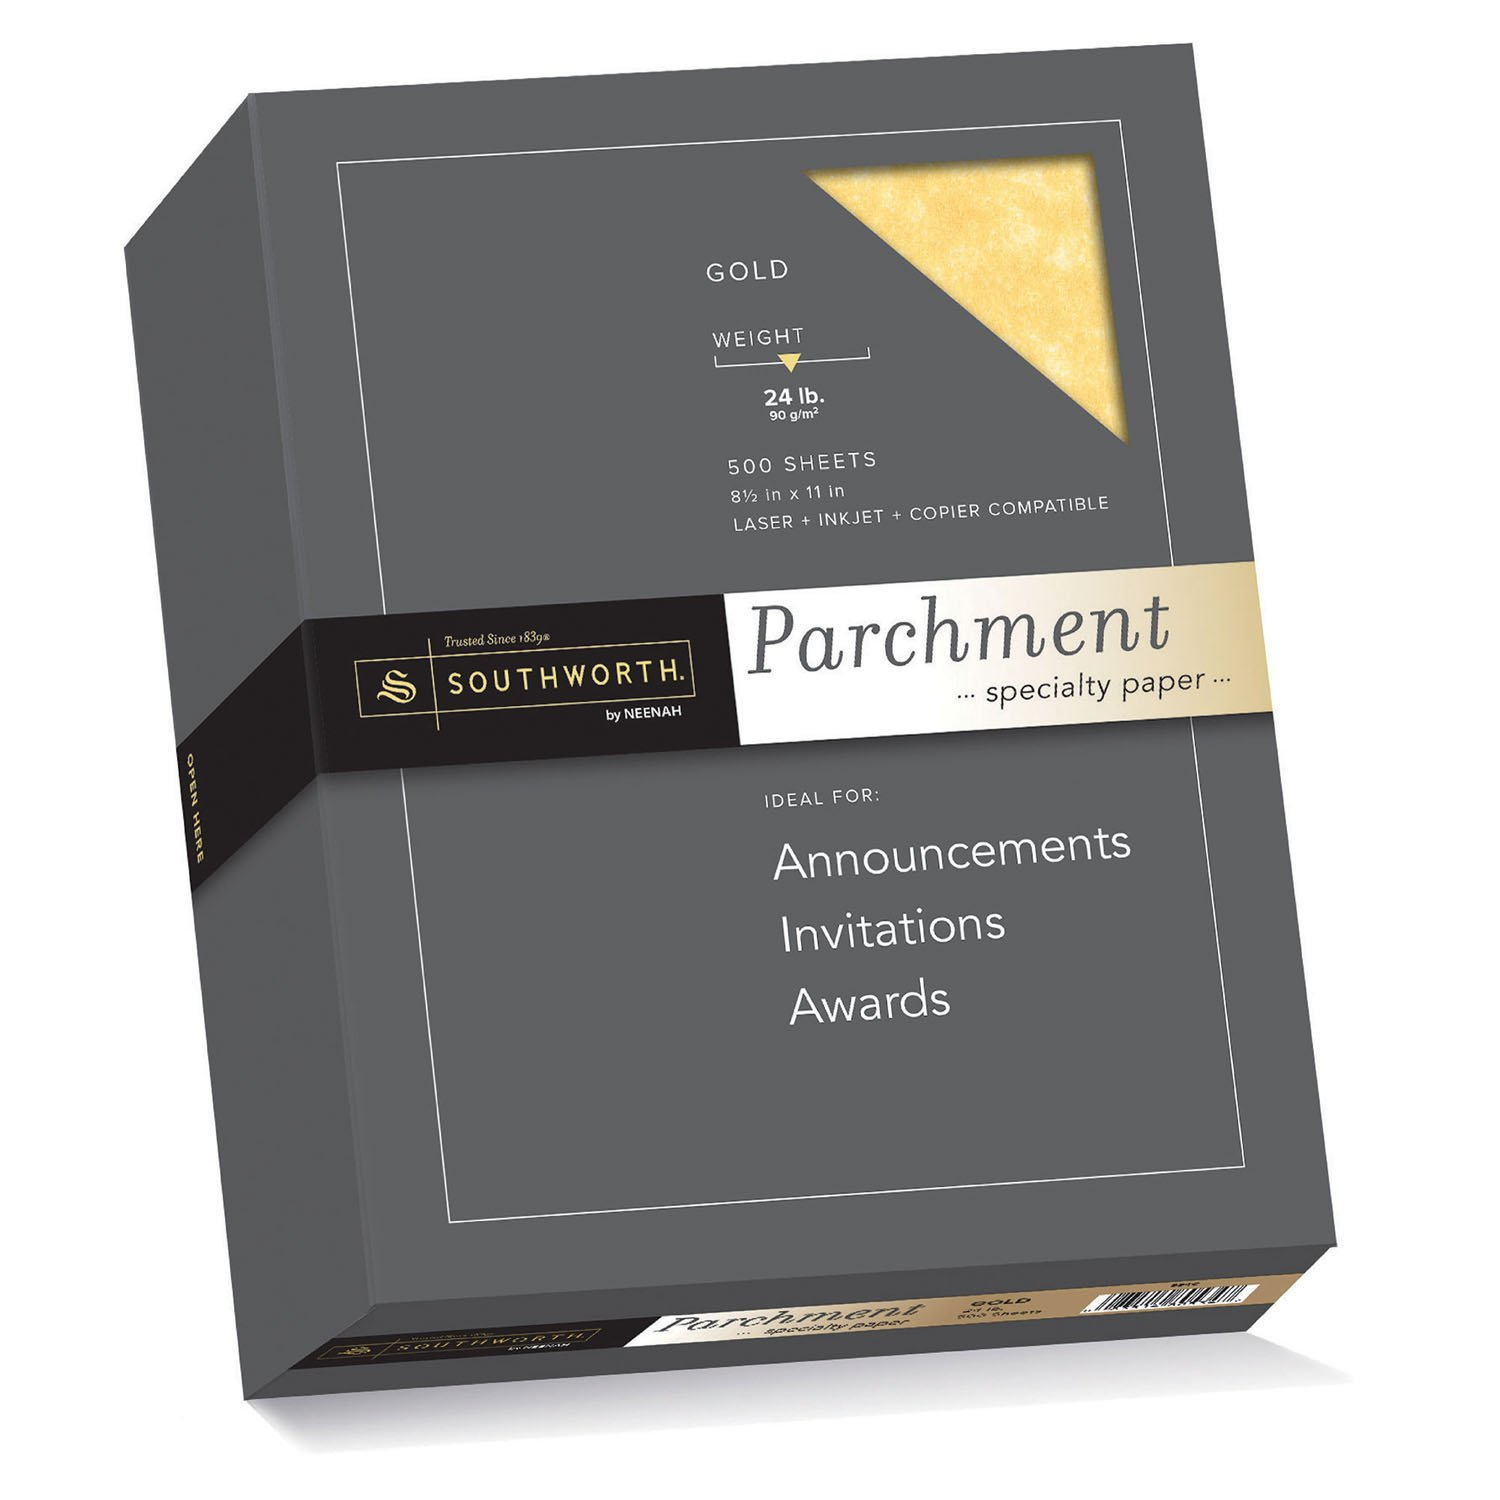 Southworth Parchment Specilaty Paper, 8.5 x 11 inches, 24 lb, Blue, 500 per Box (964C)